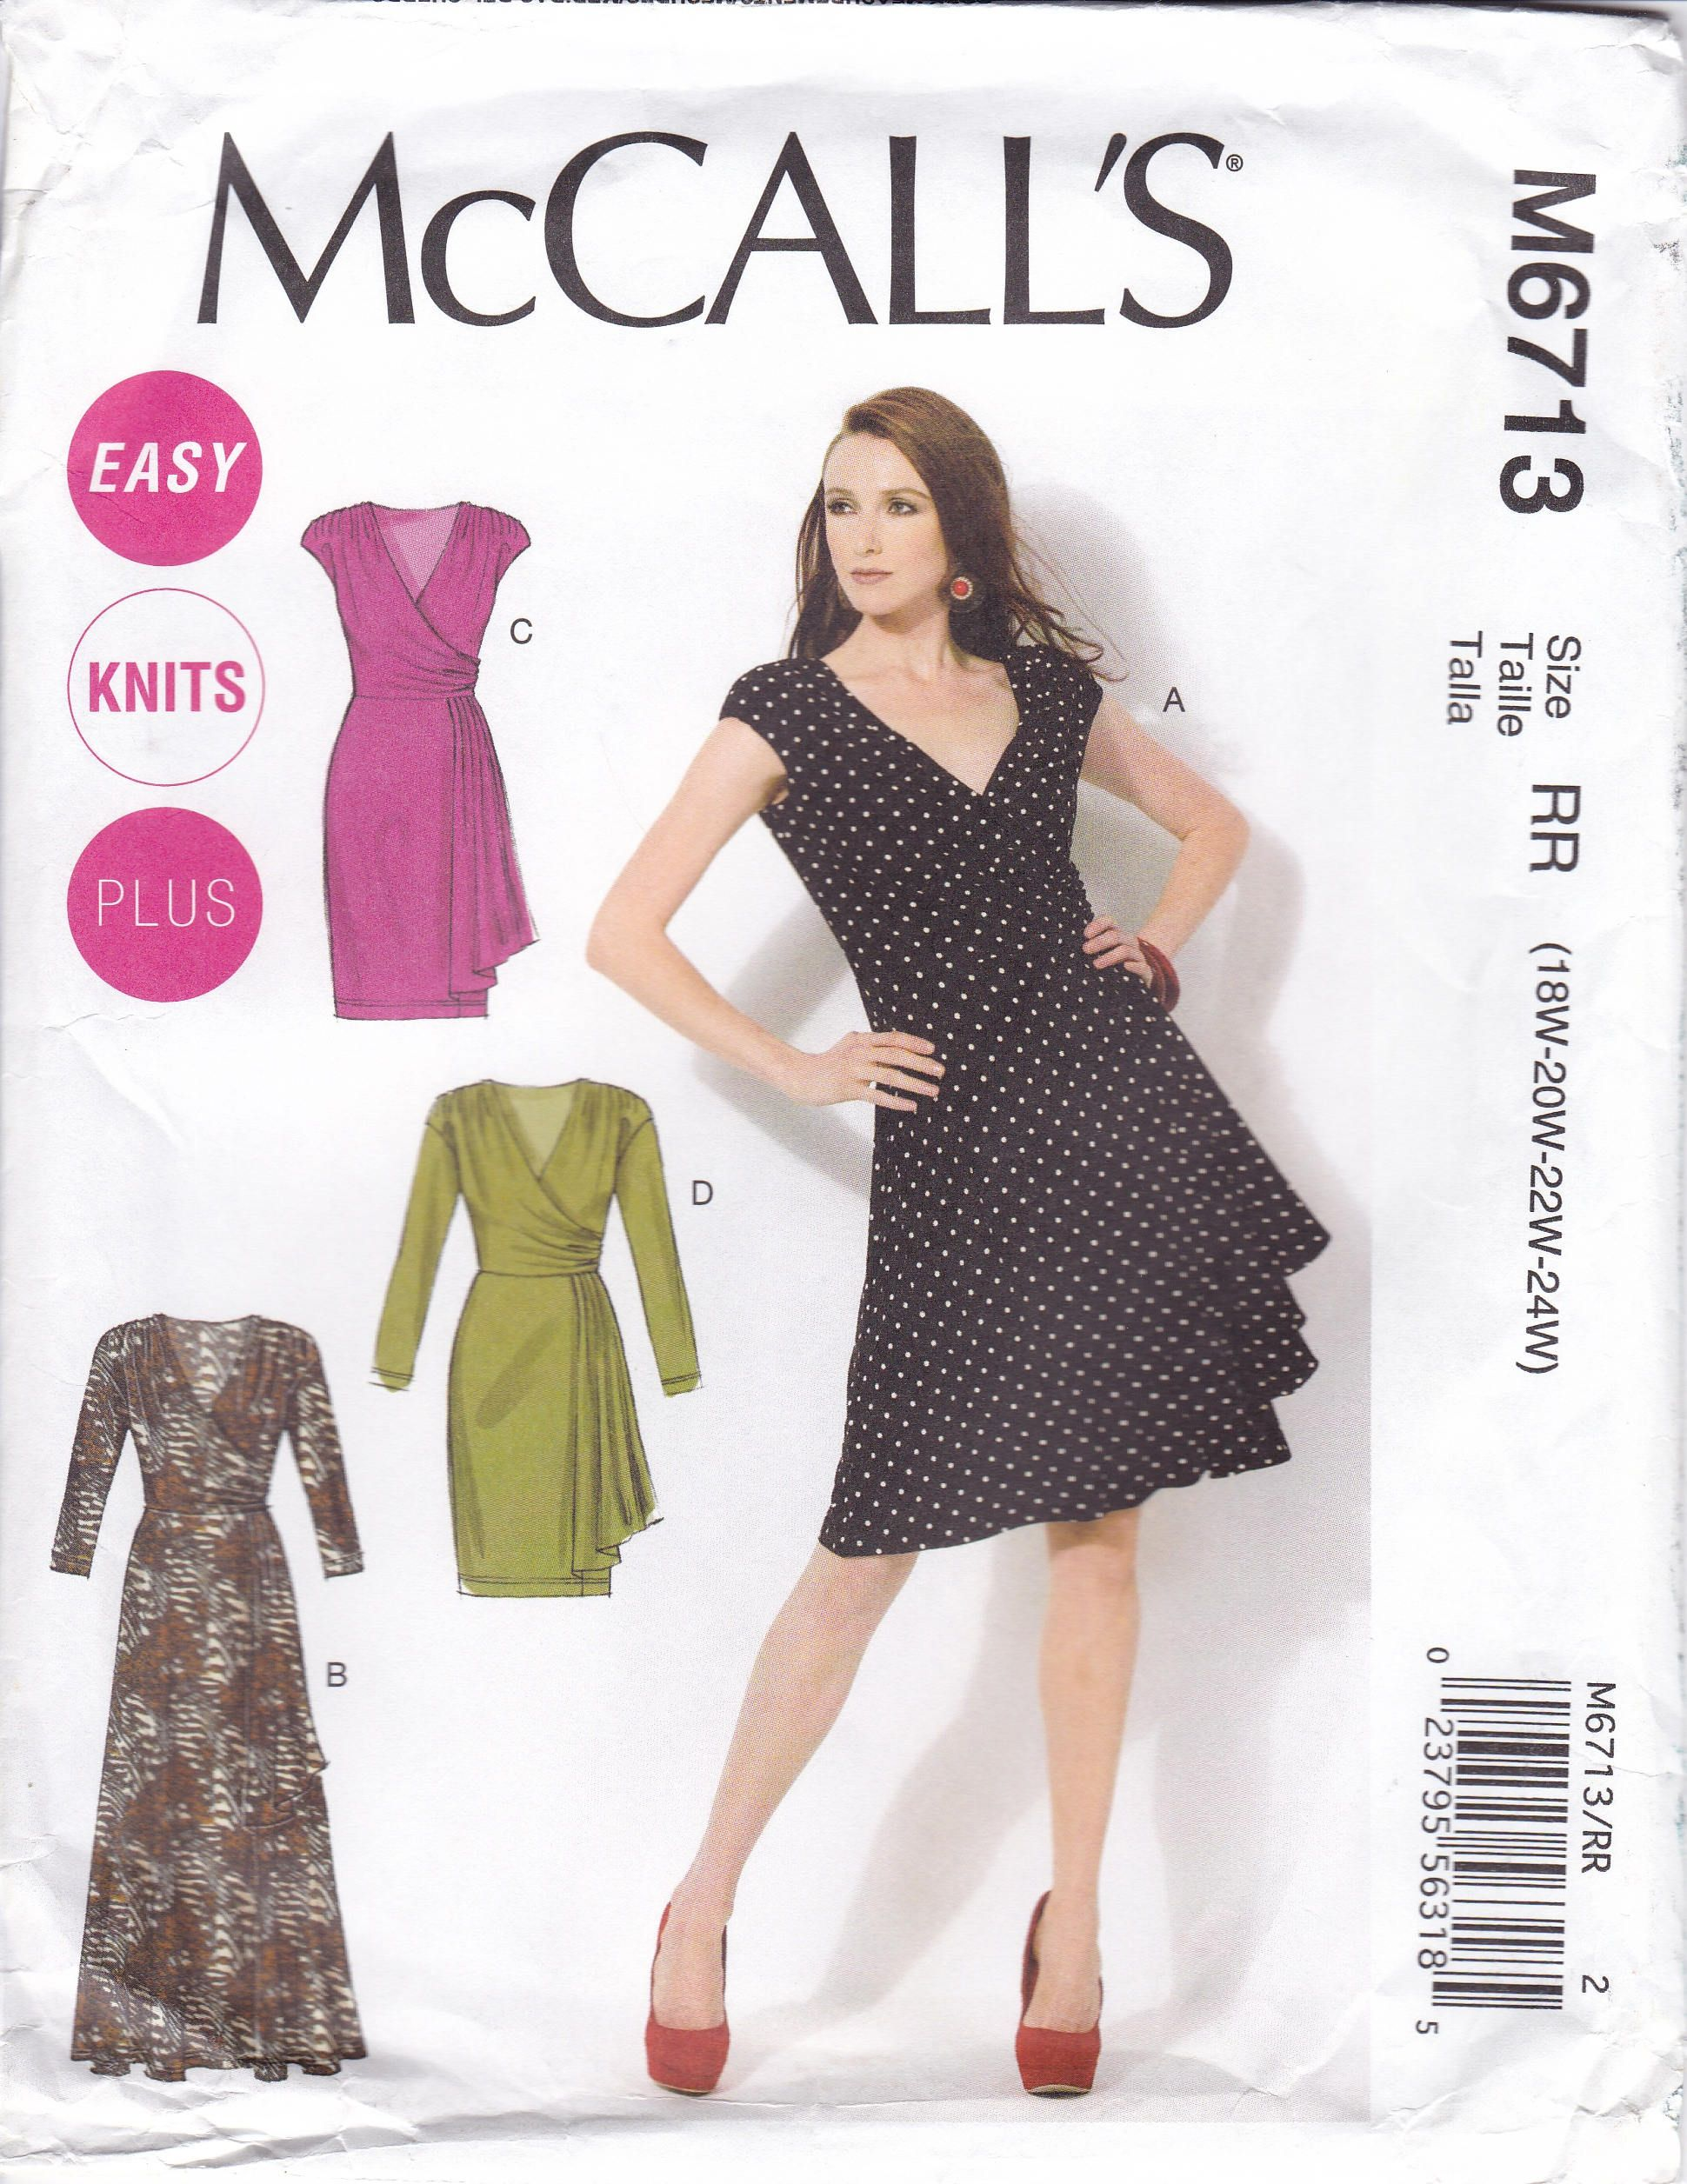 Free Us Ship Mccall S 6713 Dress Maxi Day Evening Easy Knits Sash Shoulder Pads Out Of Print Sewing Dresses Mccalls Sewing Patterns Wrap Dress Sewing Patterns [ 2512 x 1940 Pixel ]